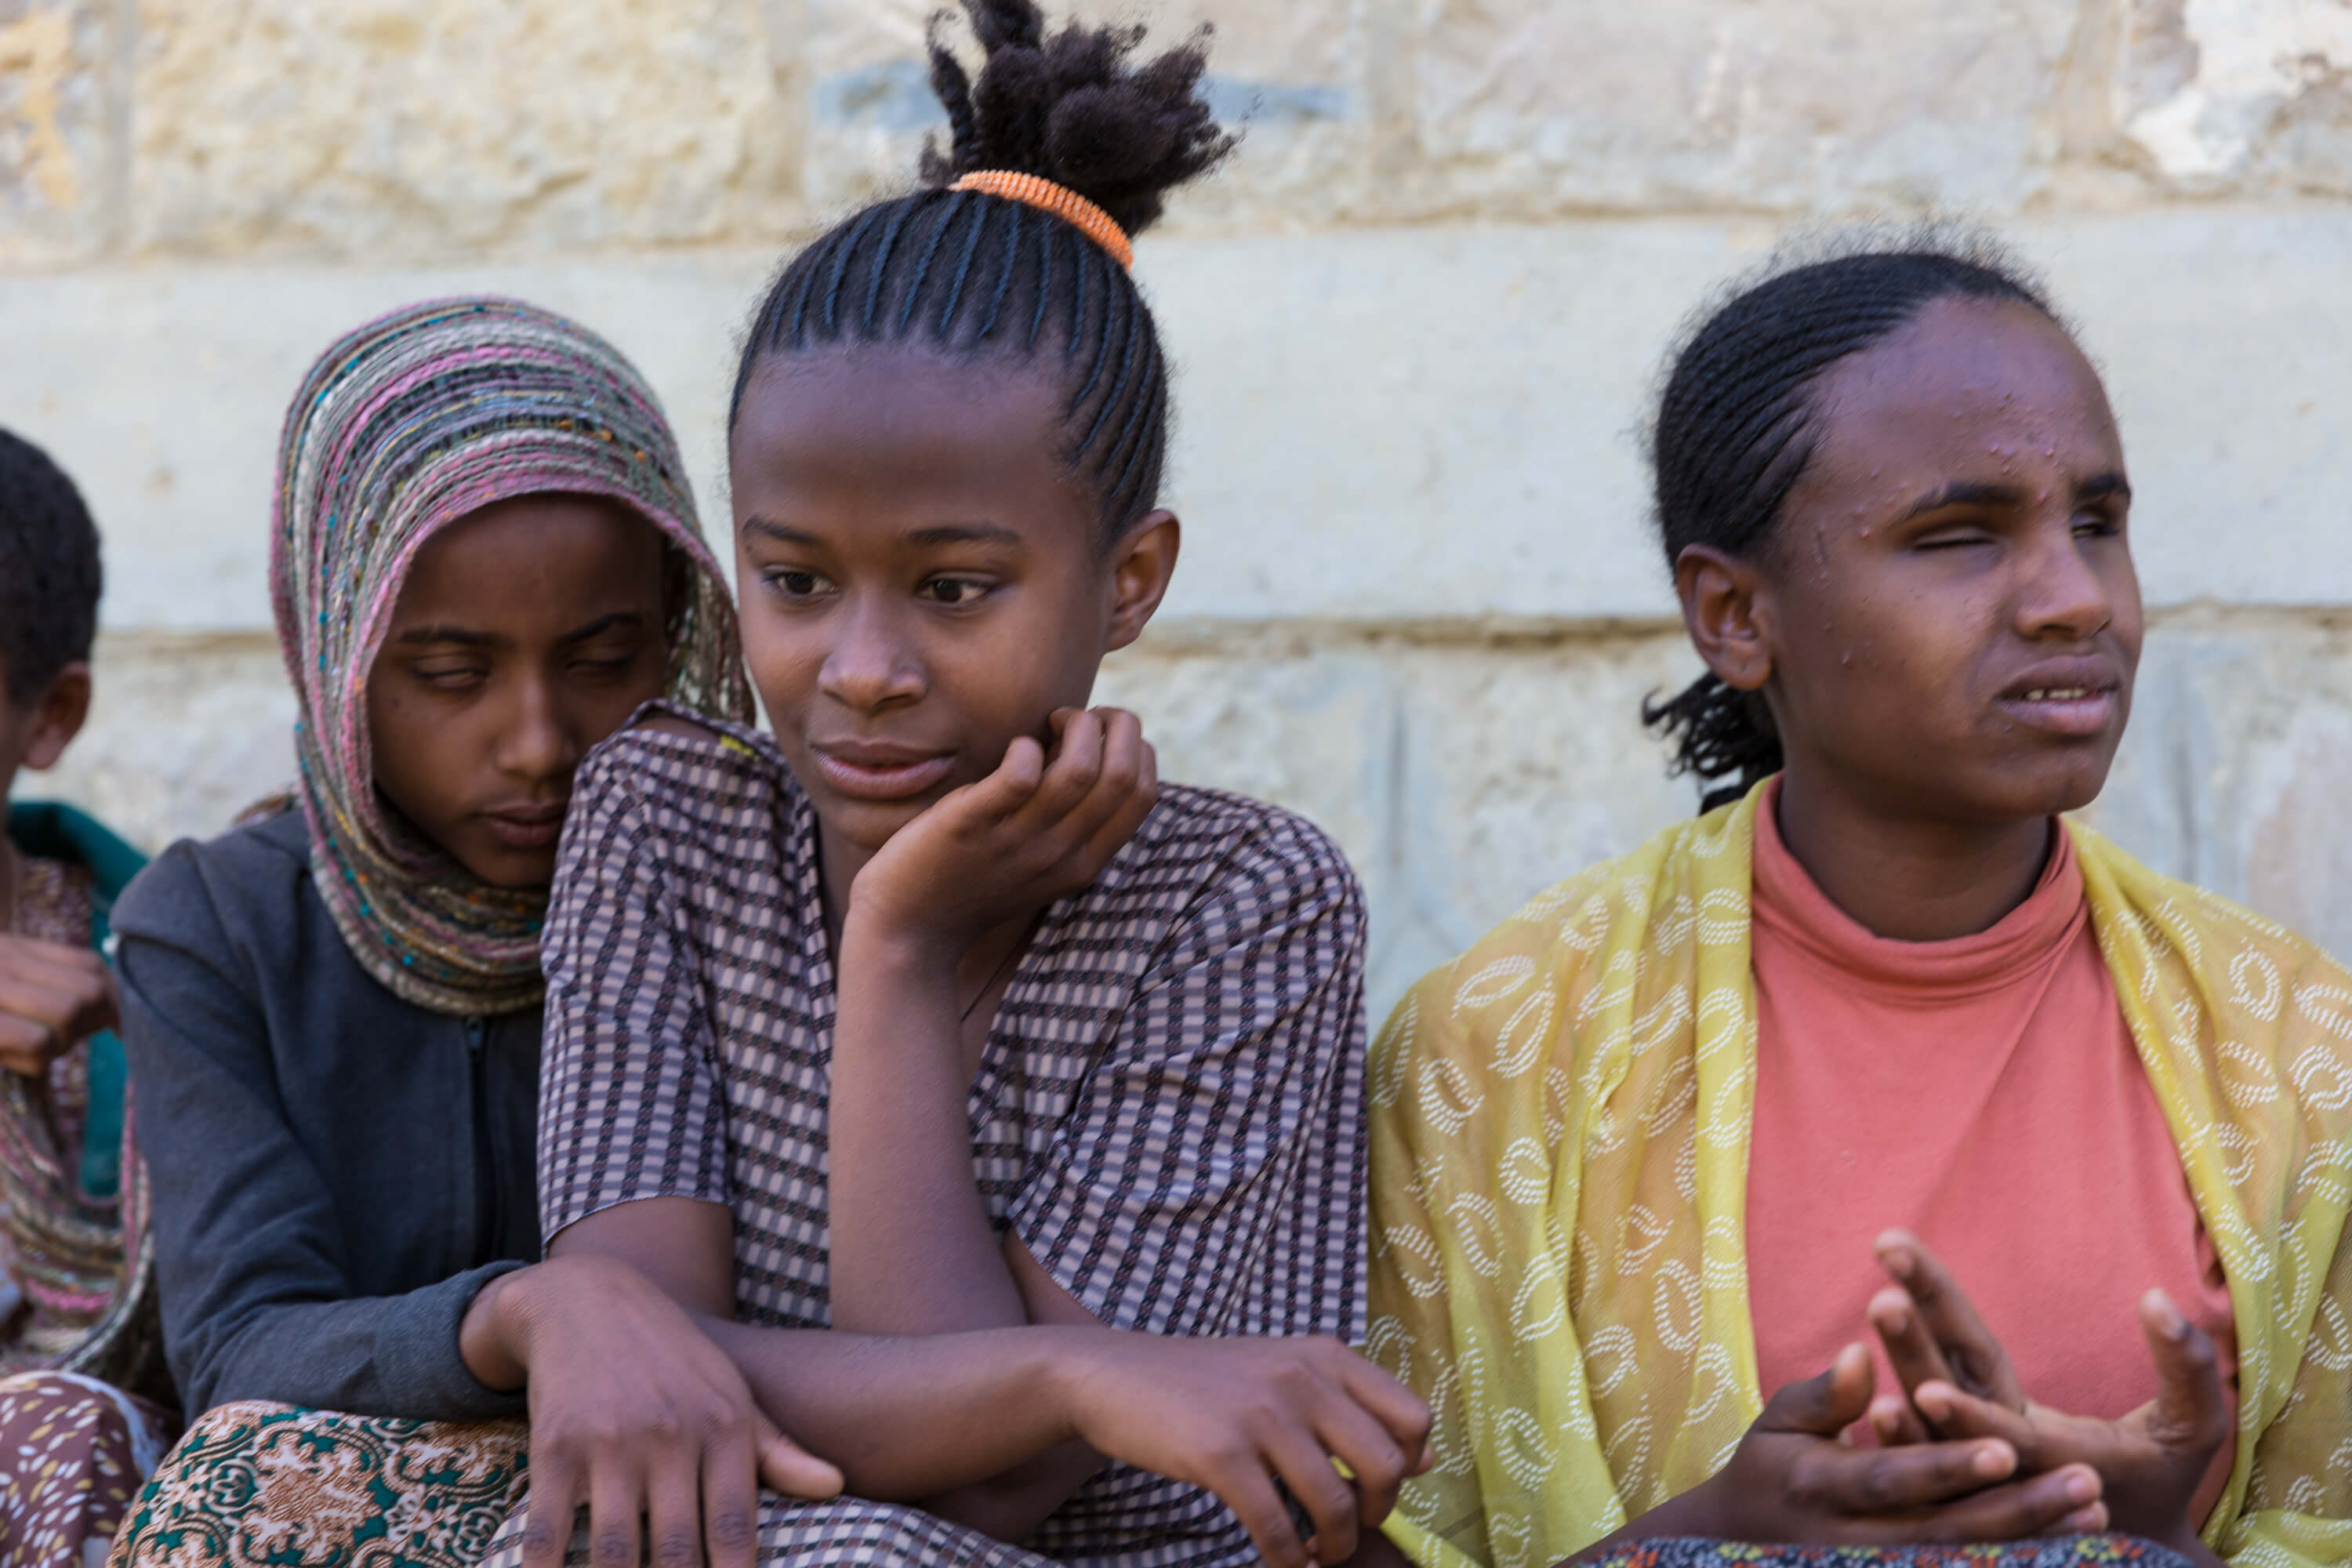 Teenage girls in Ethiopia